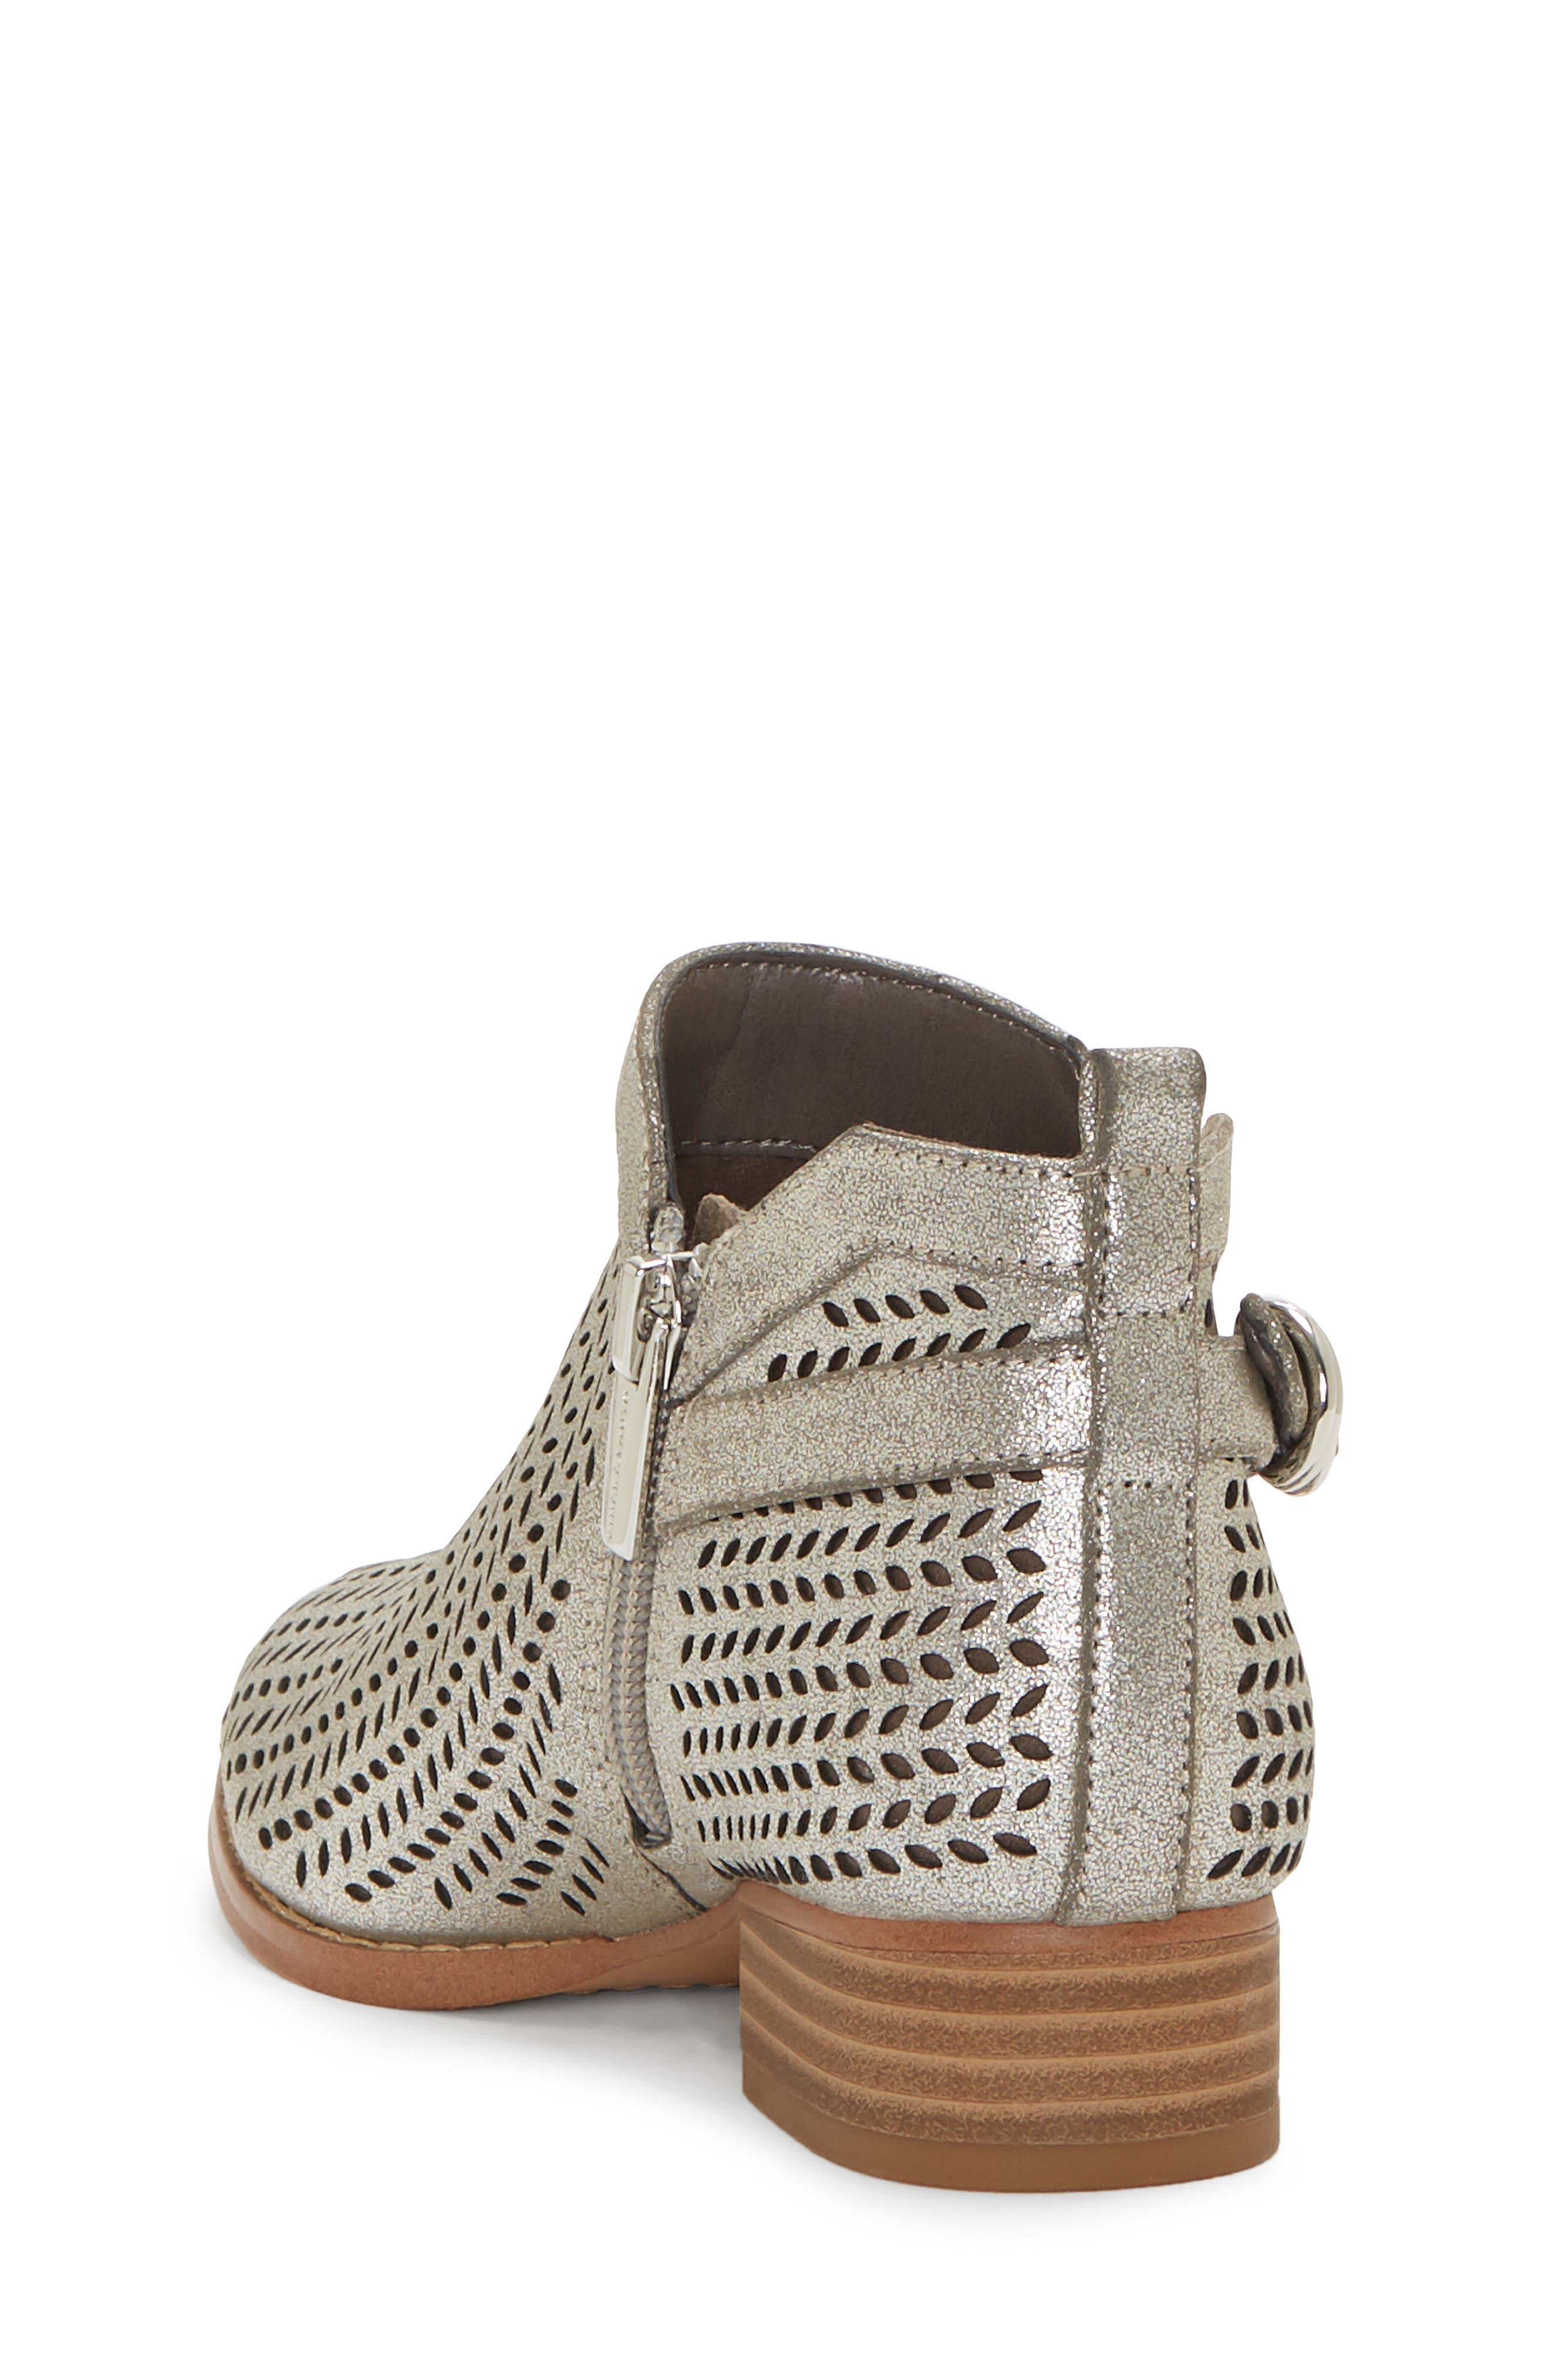 Campina Perforated Bootie,                             Alternate thumbnail 2, color,                             DARK SILVER/ TAUPE